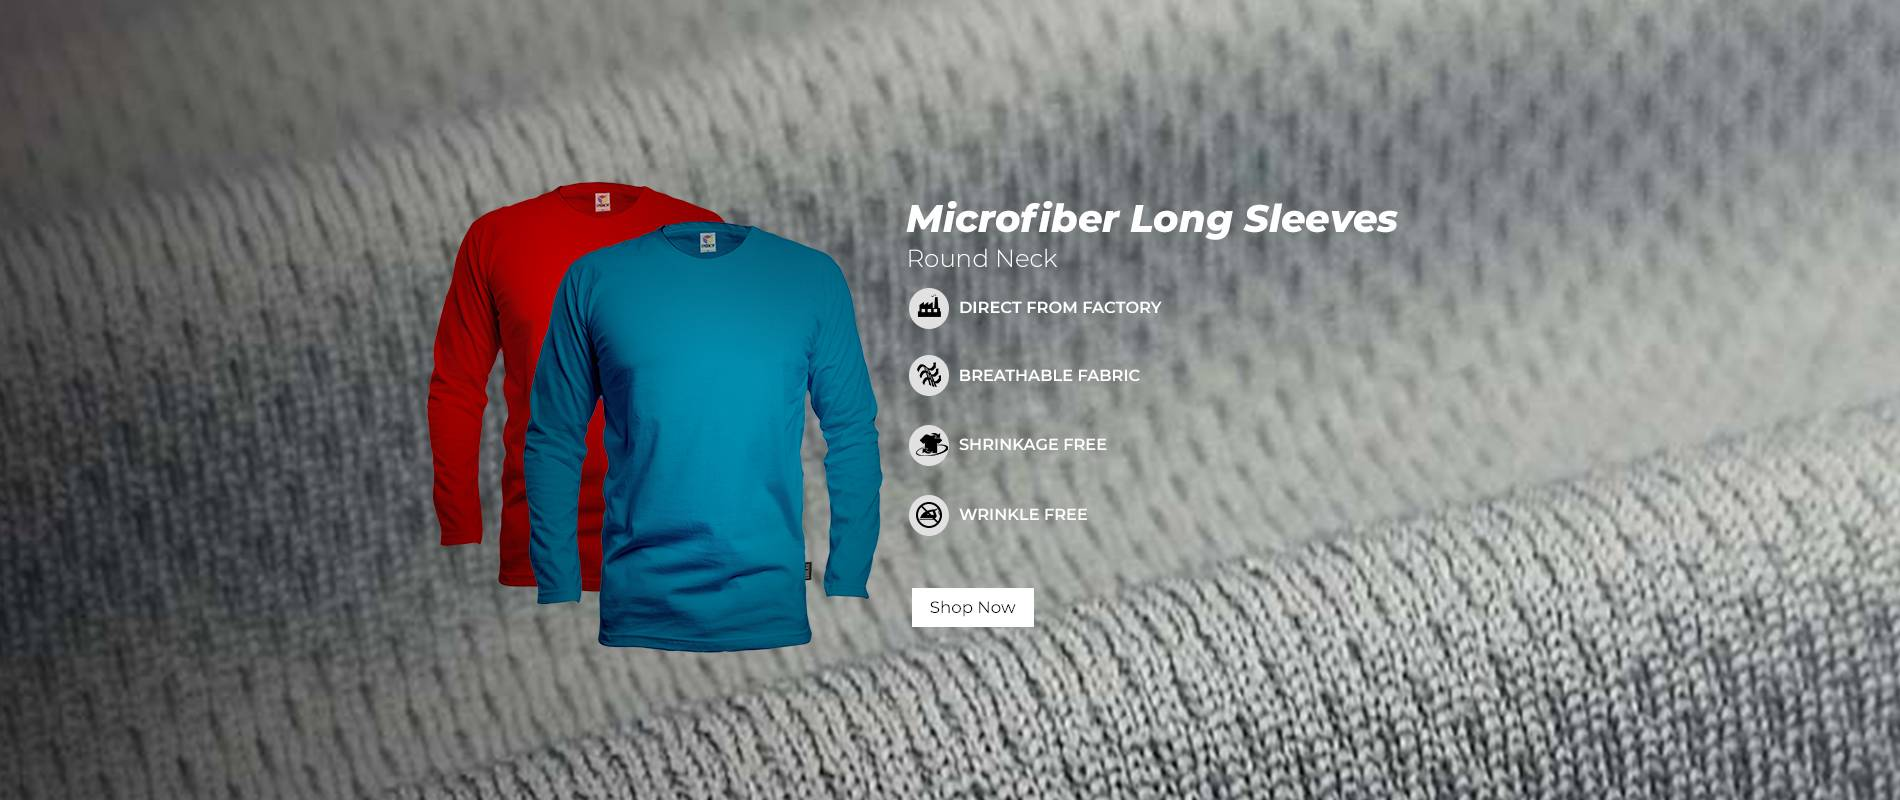 https://www.boxy.my/microfiber-long-sleeves